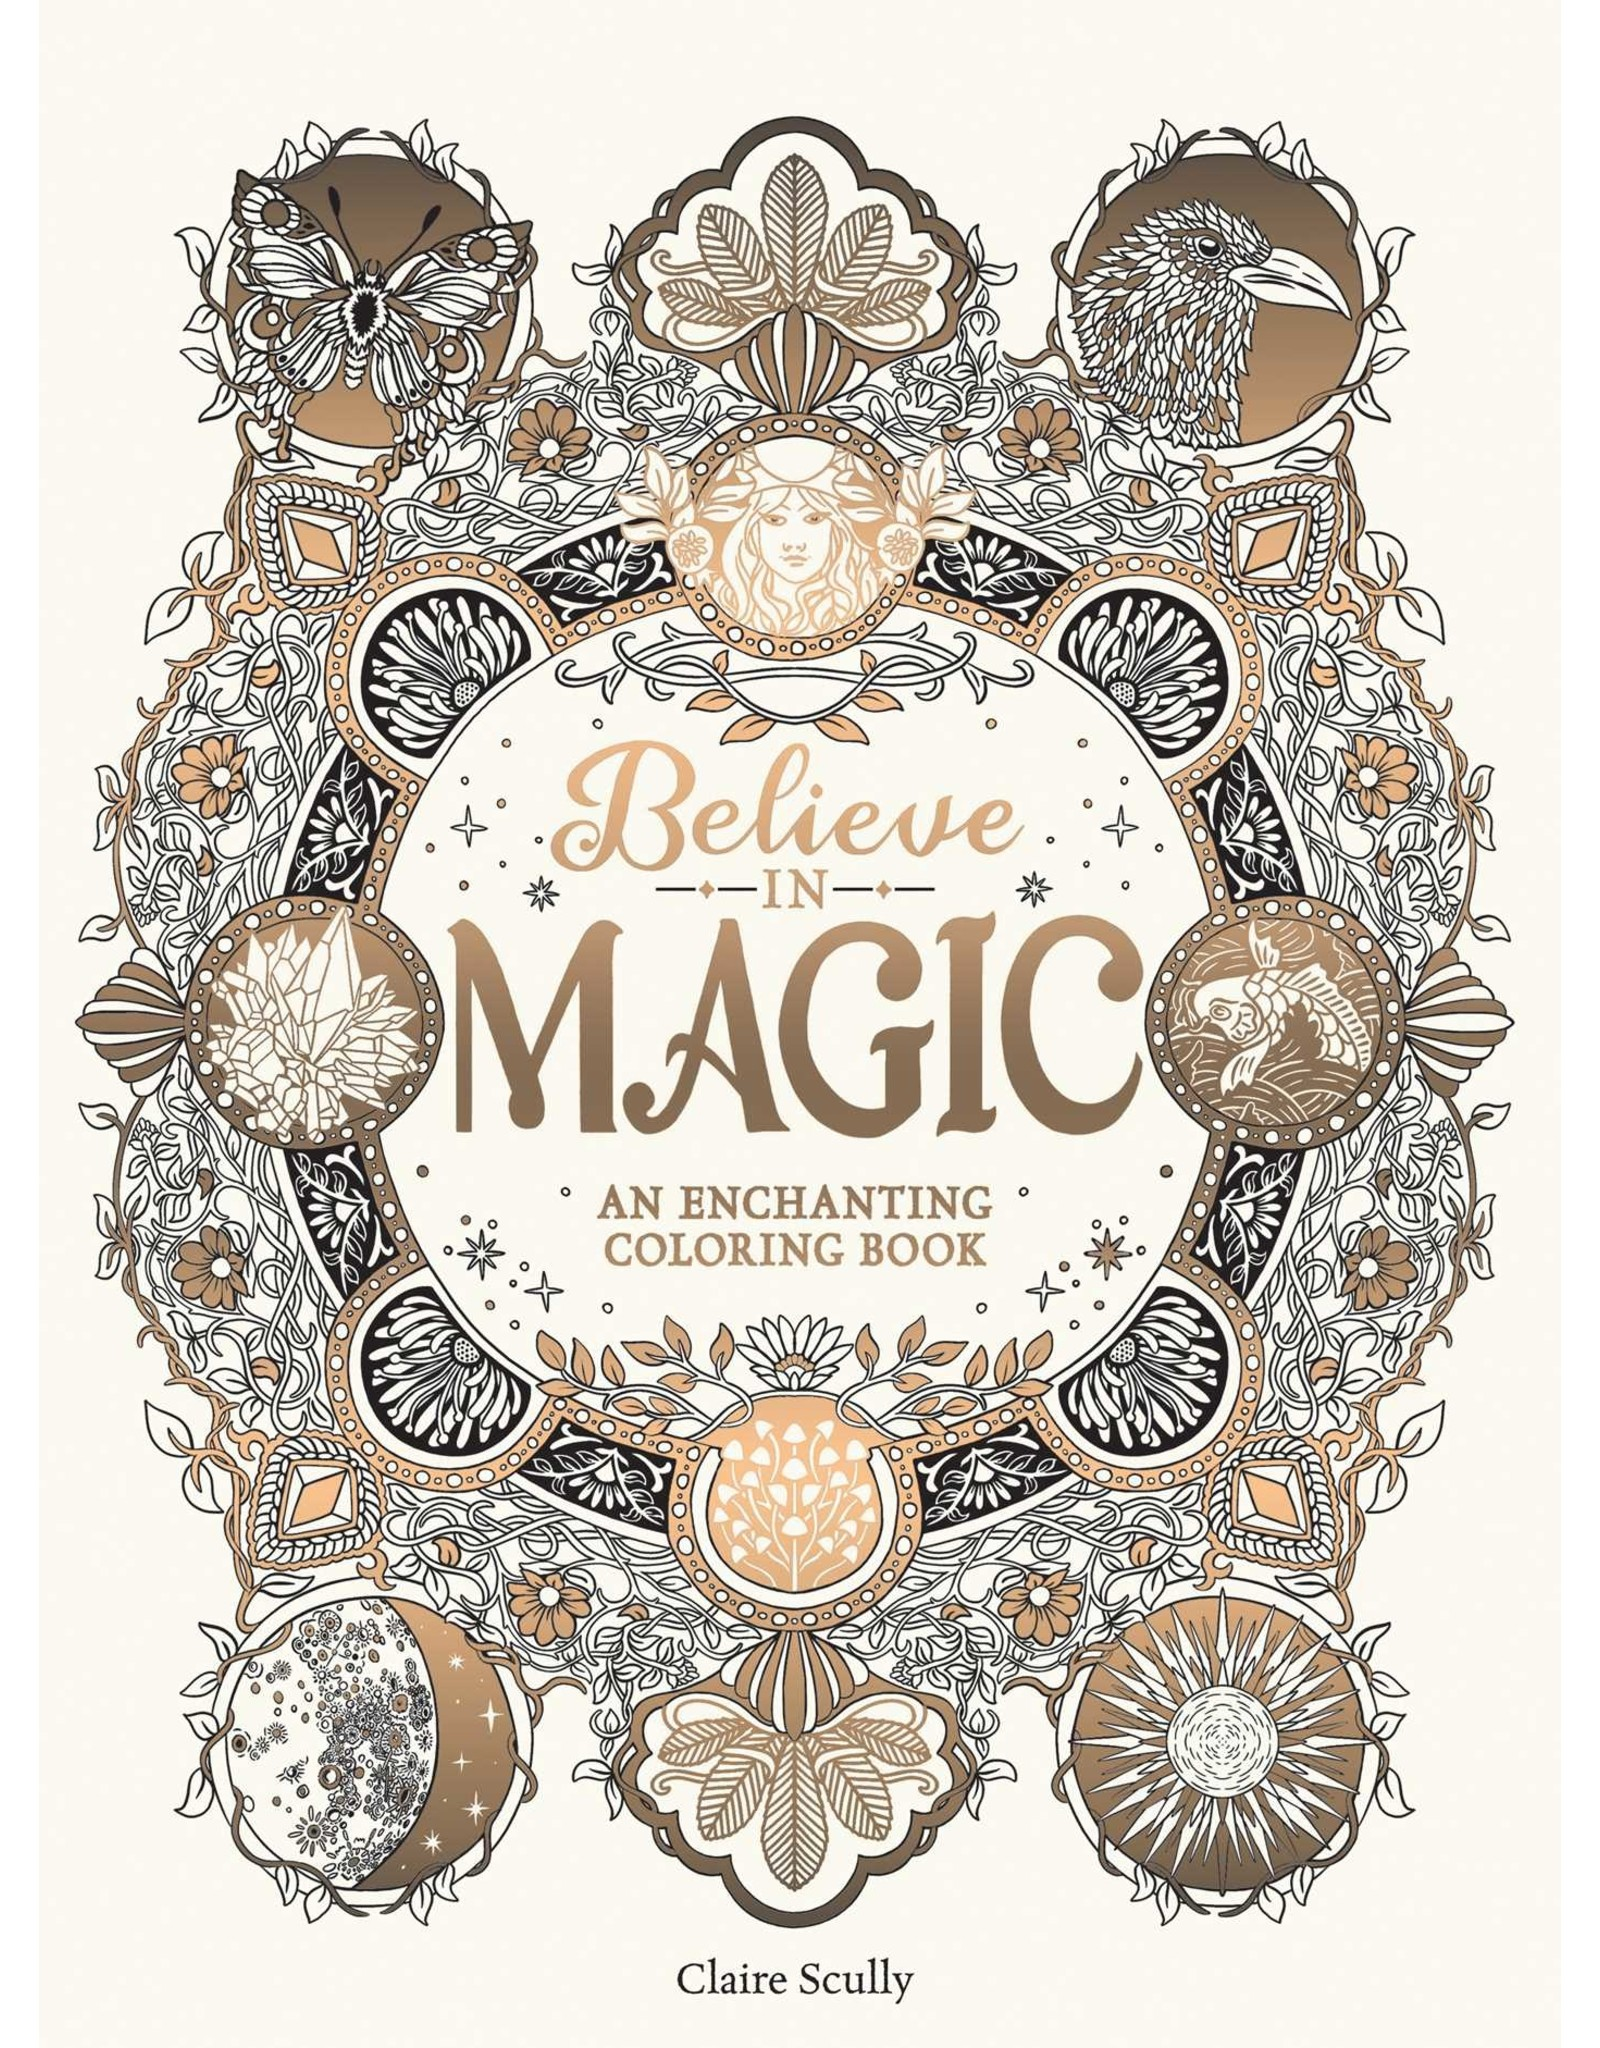 Simon & Schuster Believe in Magic: An Enchanting Coloring Book